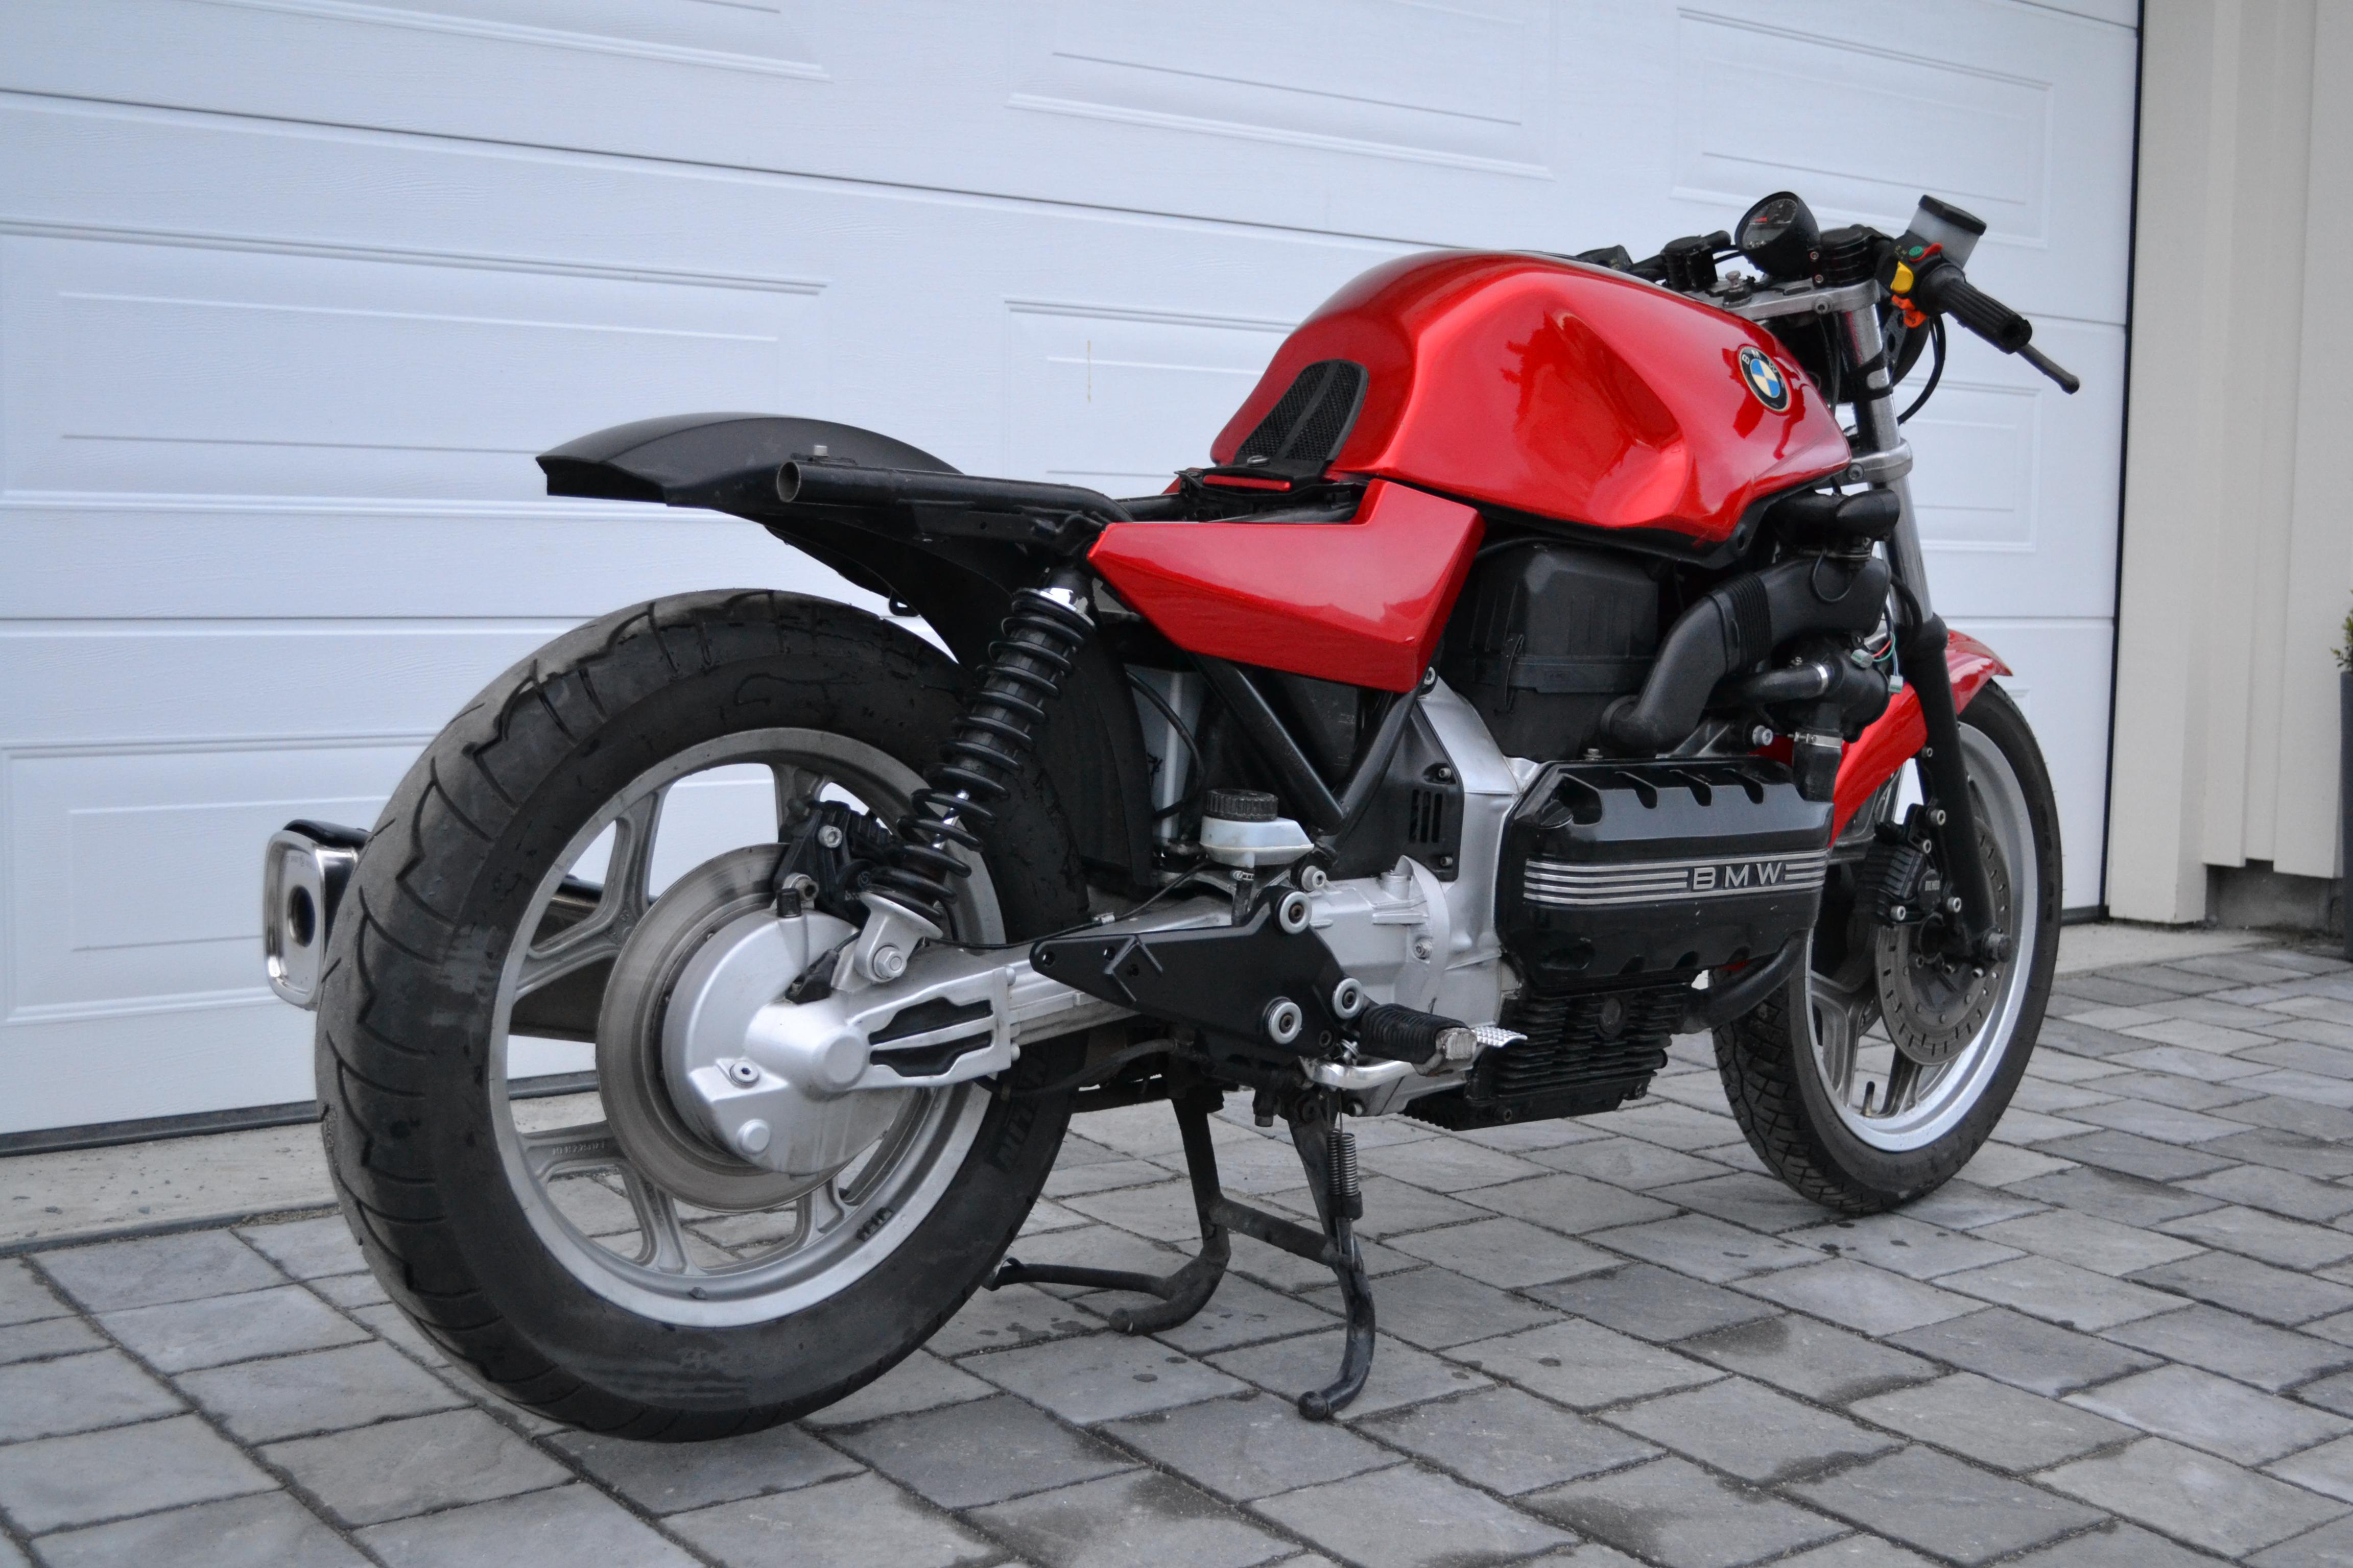 der rote baron bmw k100 cafe racer. Black Bedroom Furniture Sets. Home Design Ideas